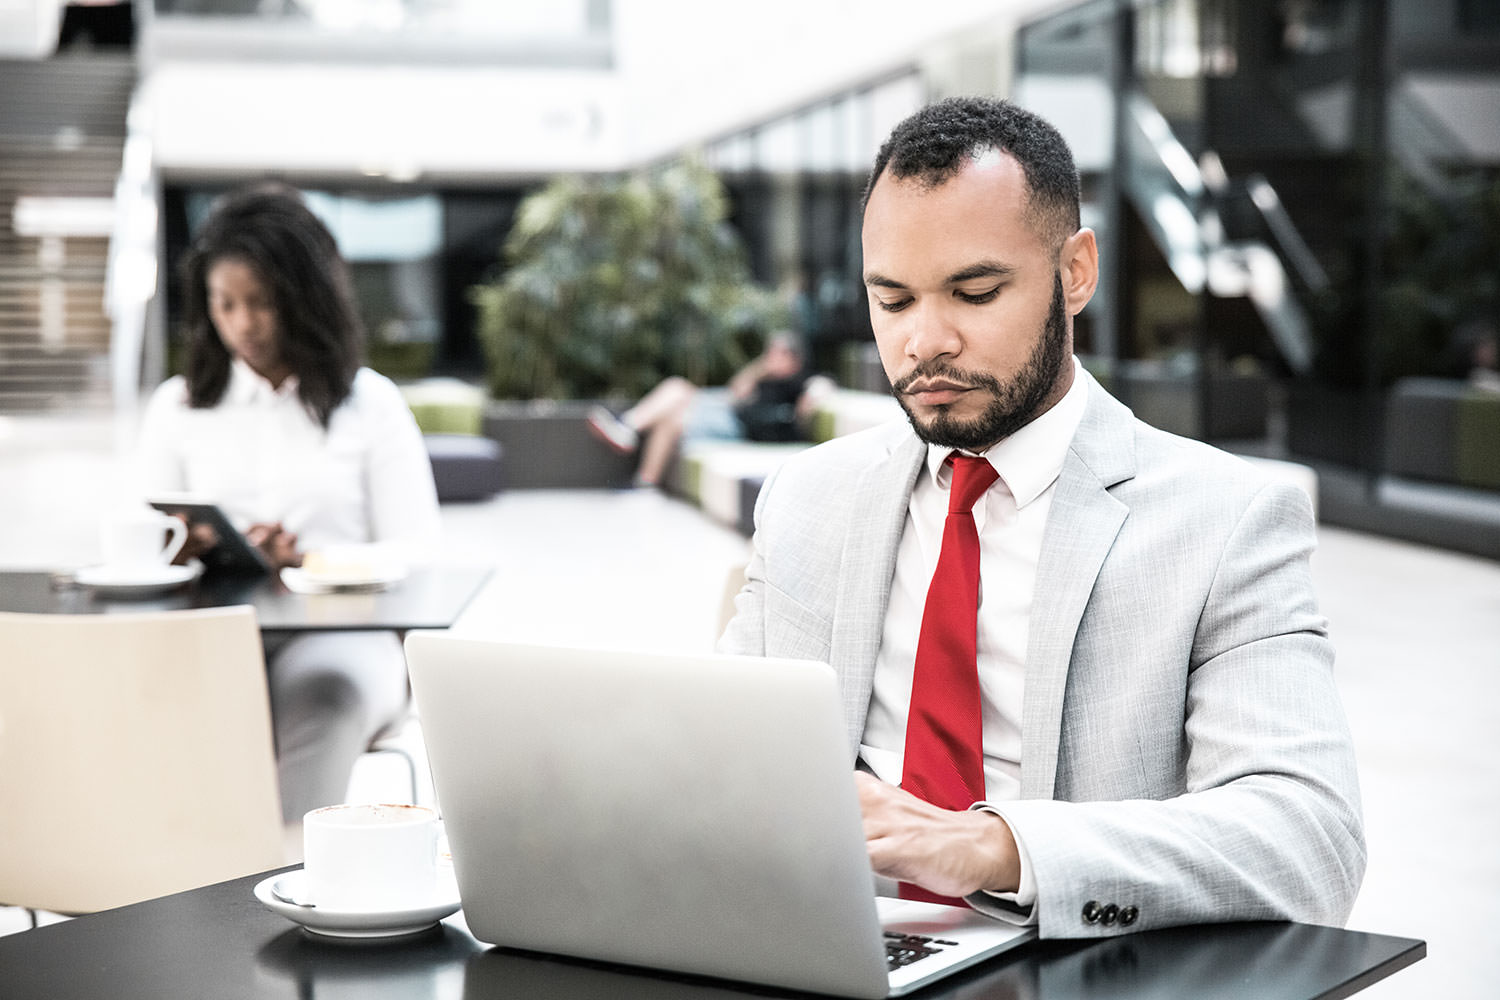 Man with red tie on a laptop.